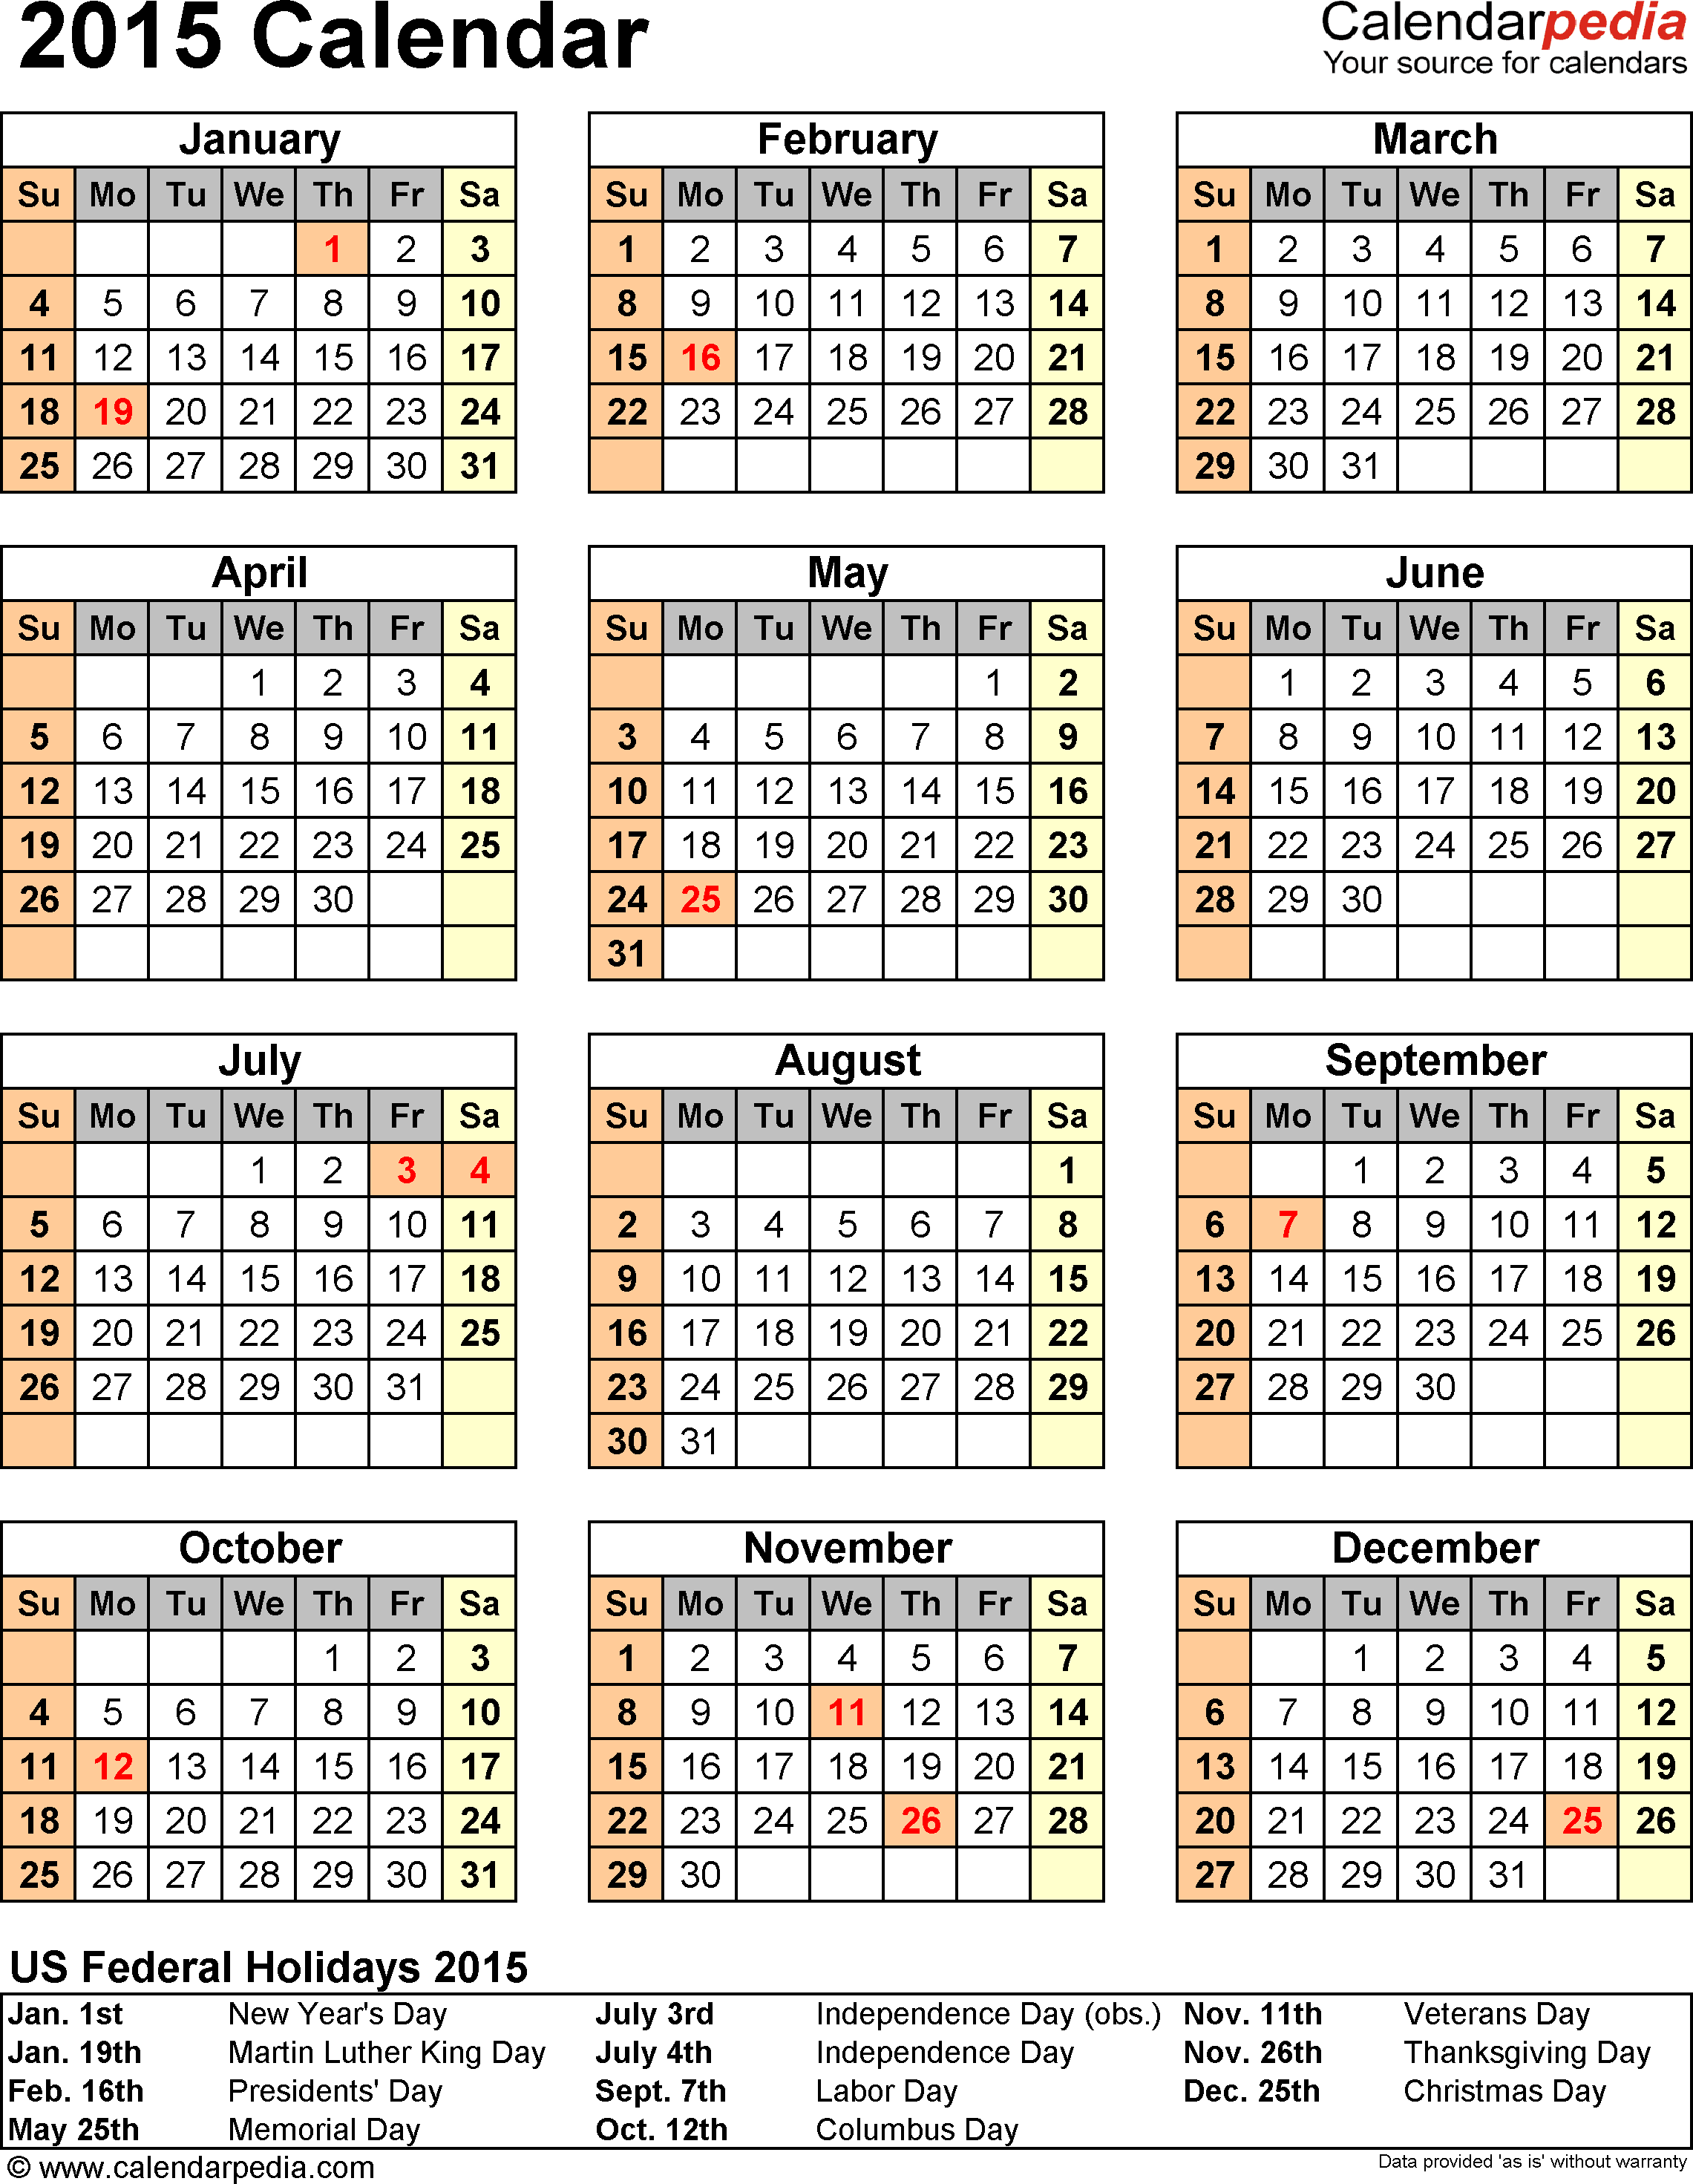 Template 14: 2015 Calendar for Word, 1 page, portrait orientation